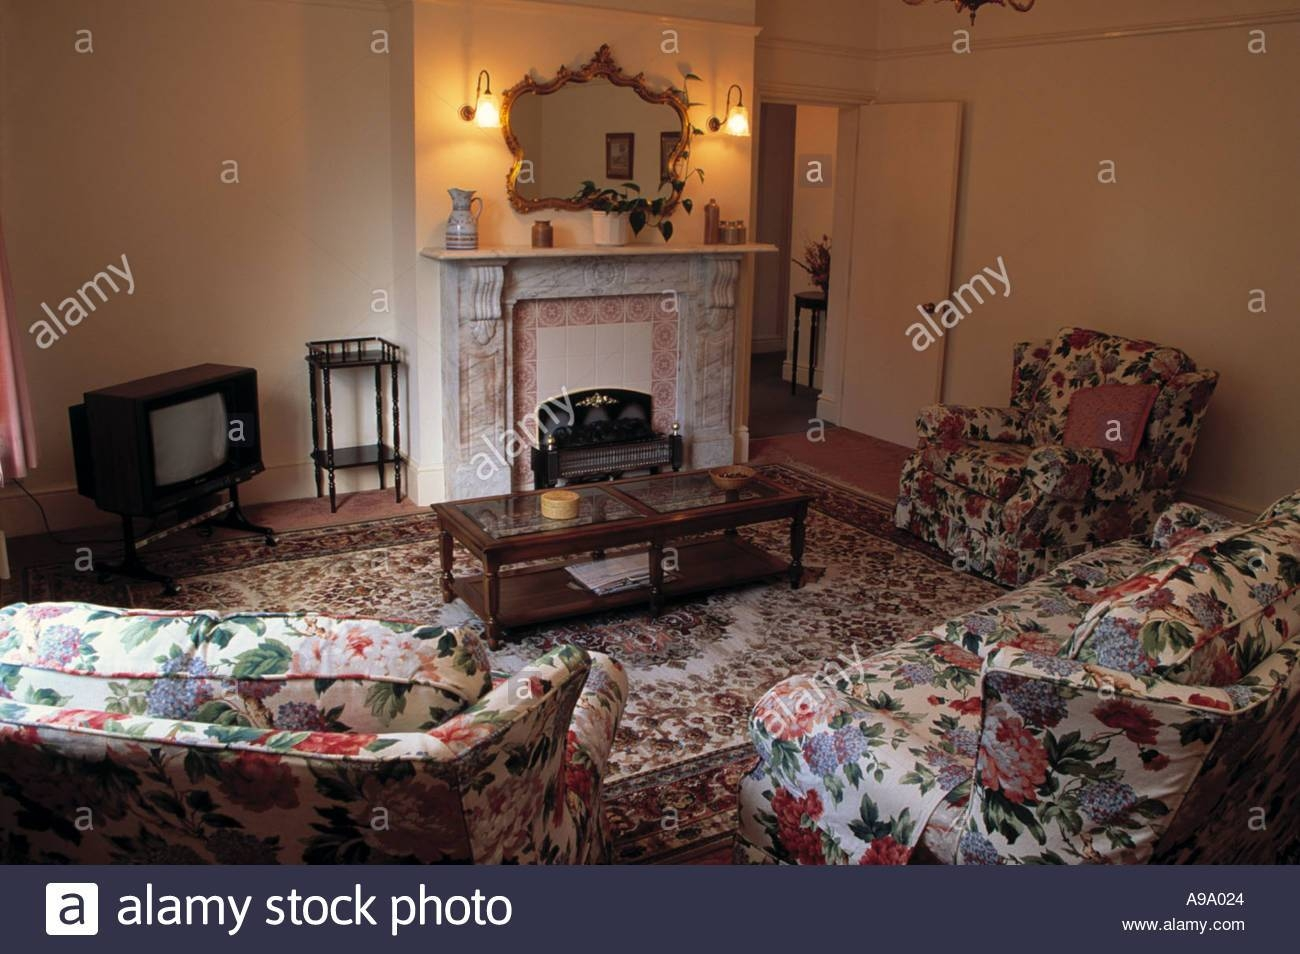 Sofas Armchairs In Living Room Stock Photos & Sofas Armchairs In with regard to Chintz Covered Sofas (Image 30 of 30)